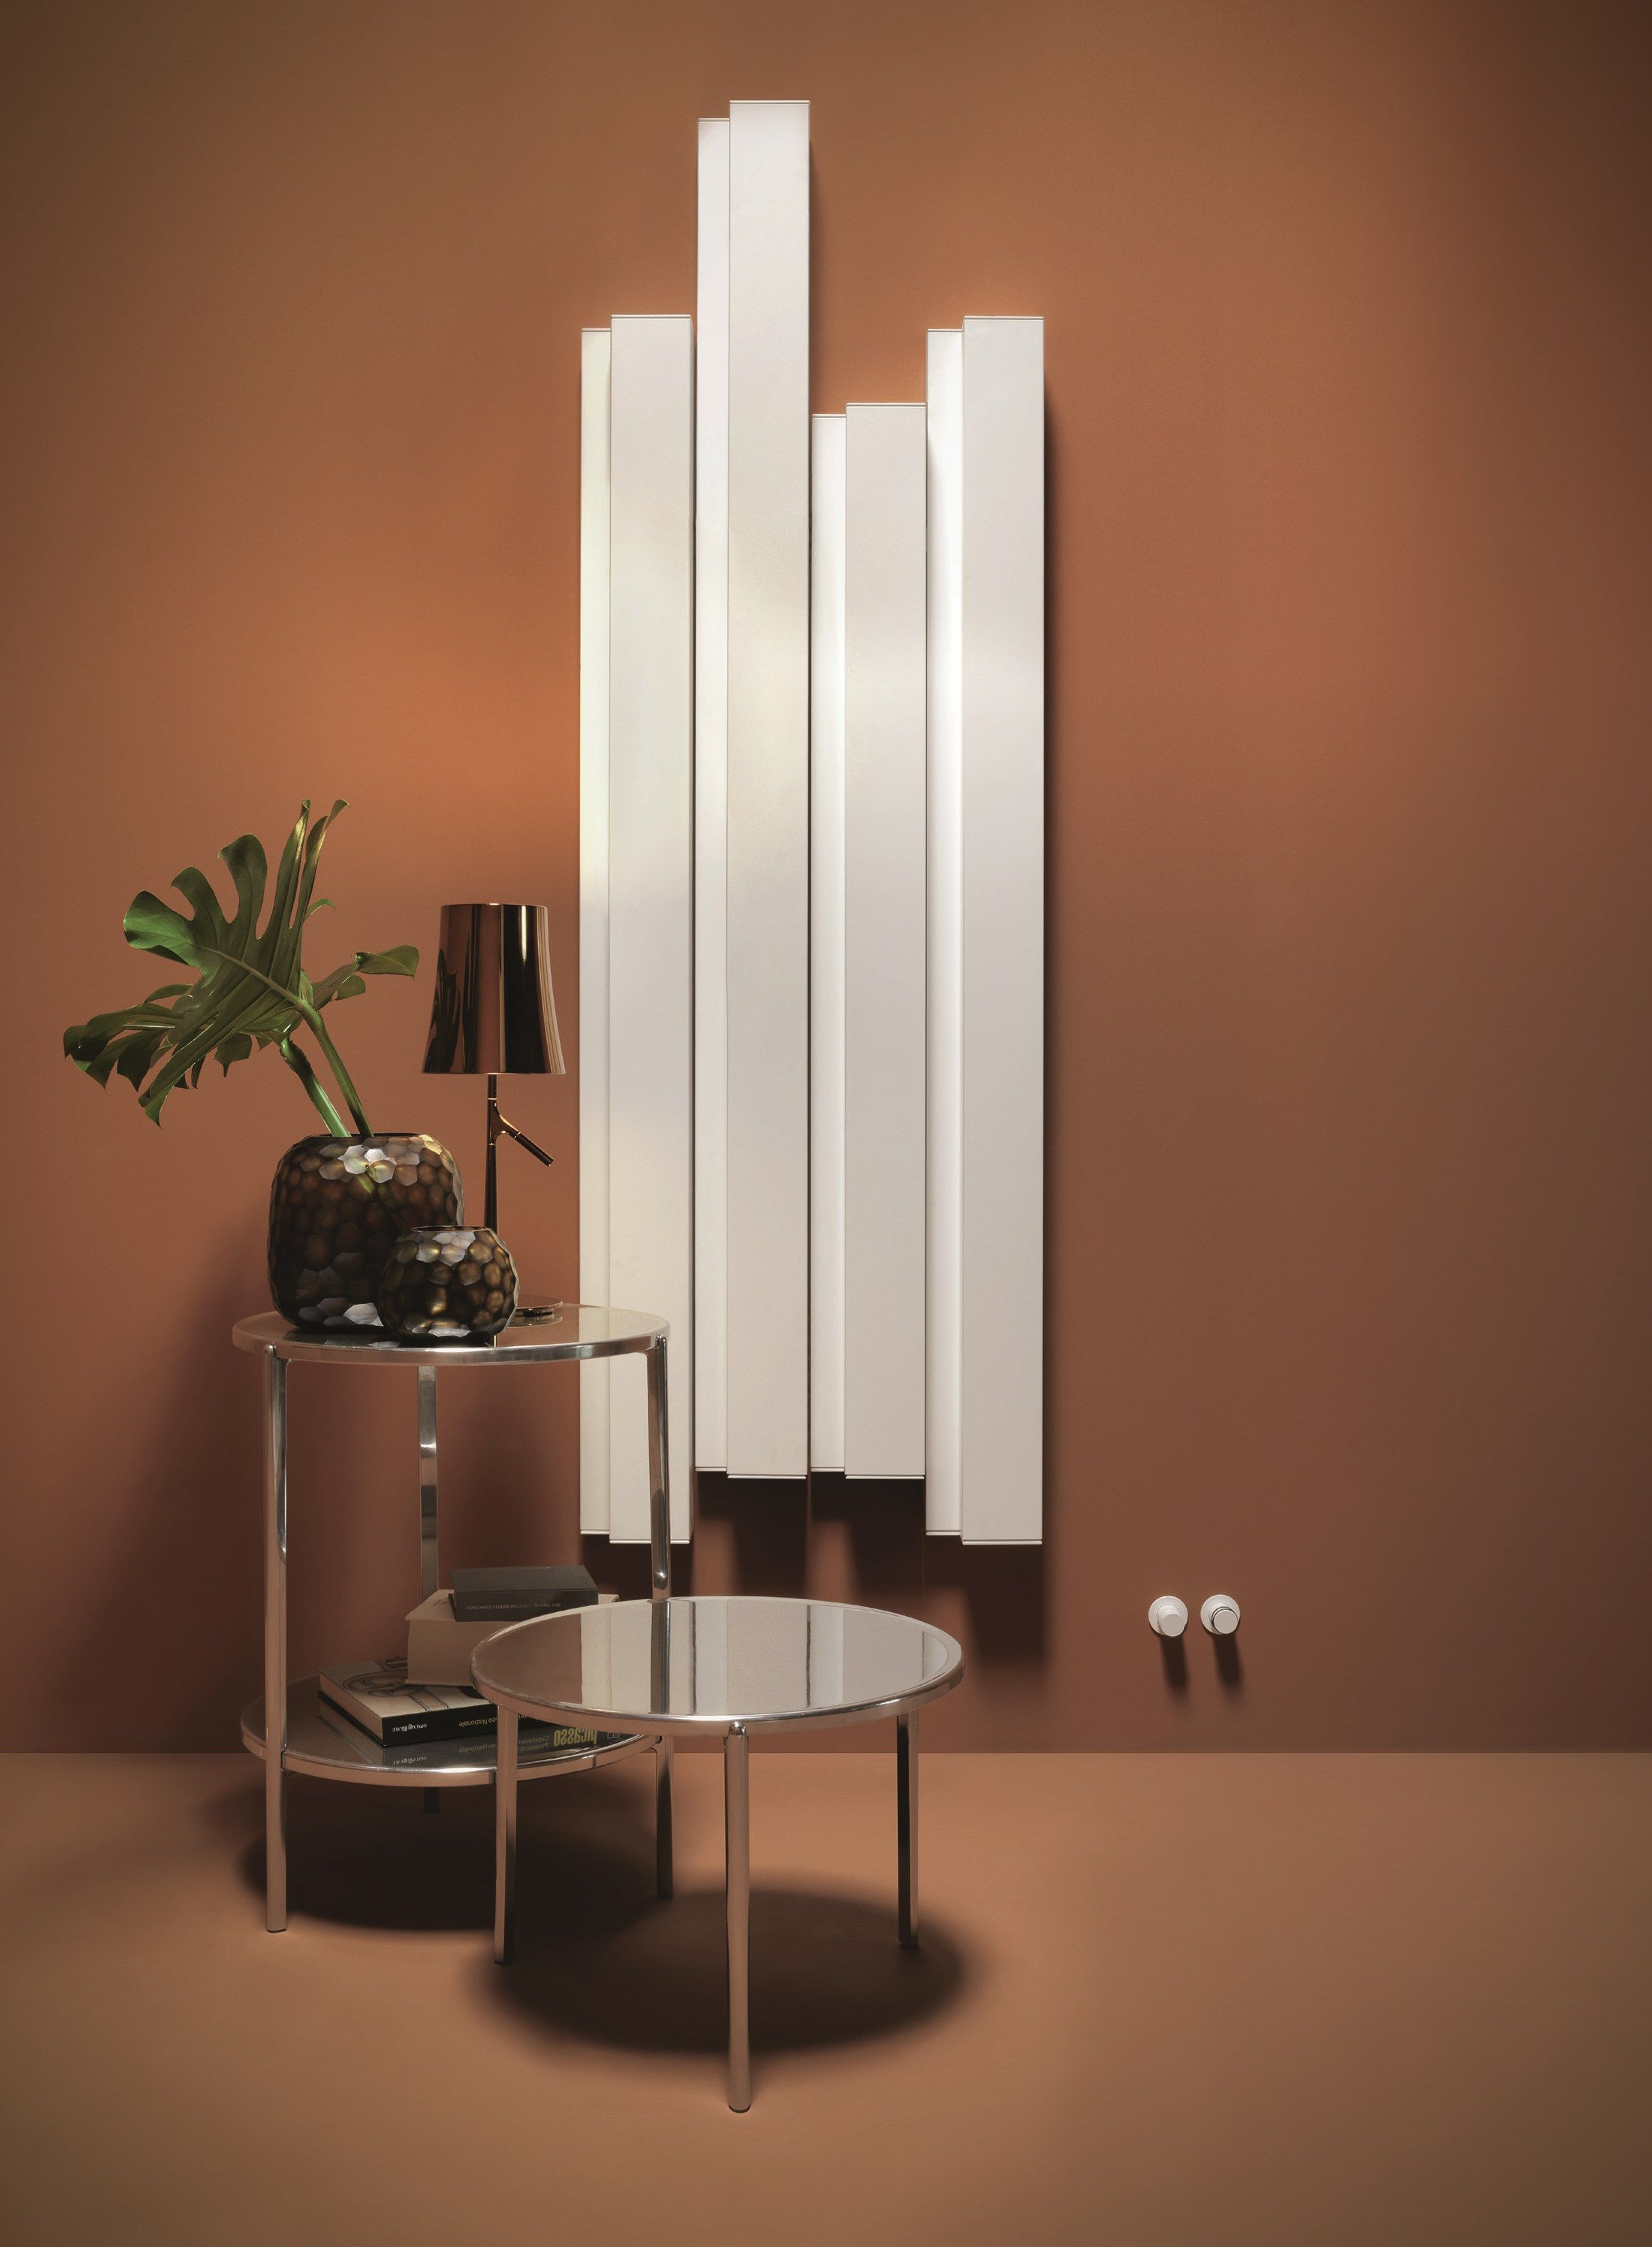 radiateur d coratif eau chaude vertical en aluminium. Black Bedroom Furniture Sets. Home Design Ideas